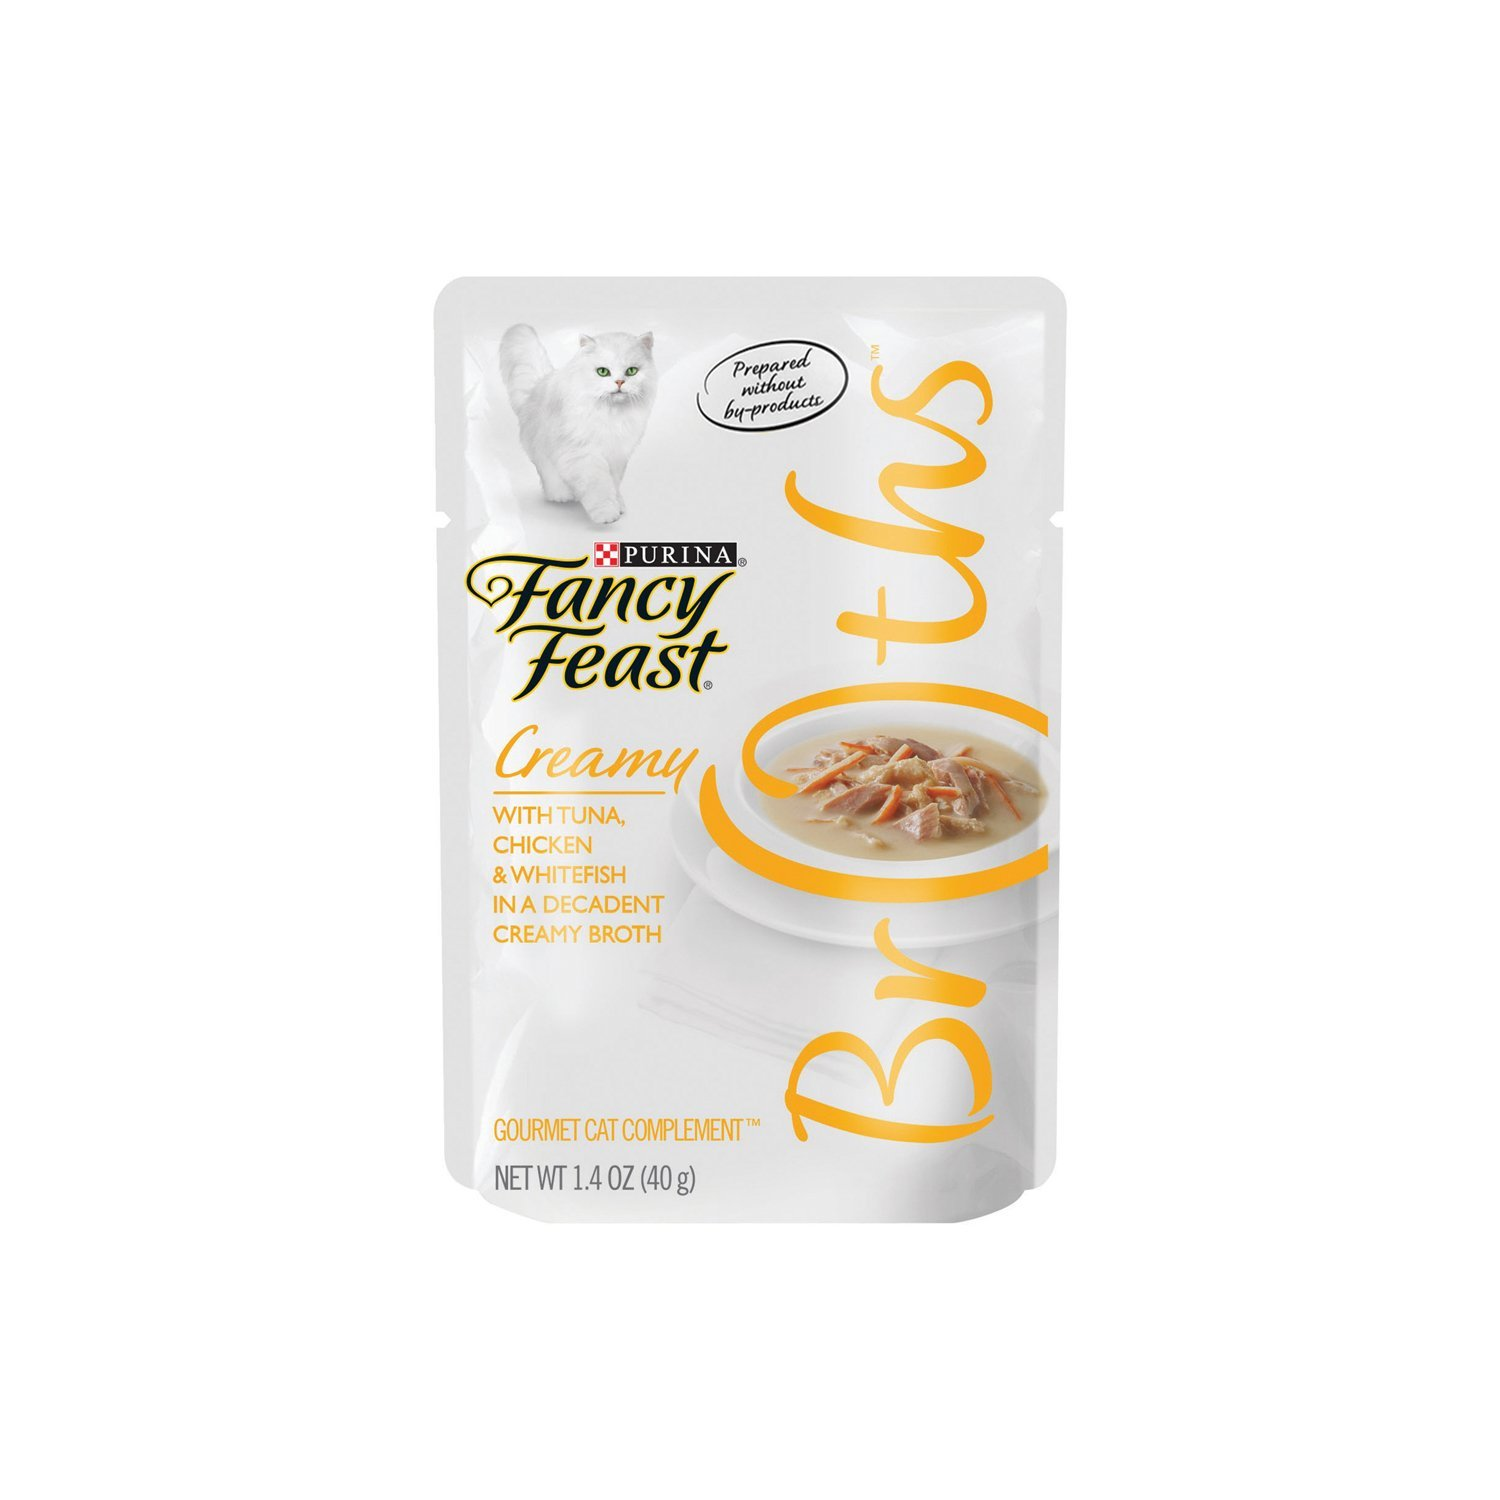 Purina Fancy Feast Broths Tuna Chicken and Whitefish